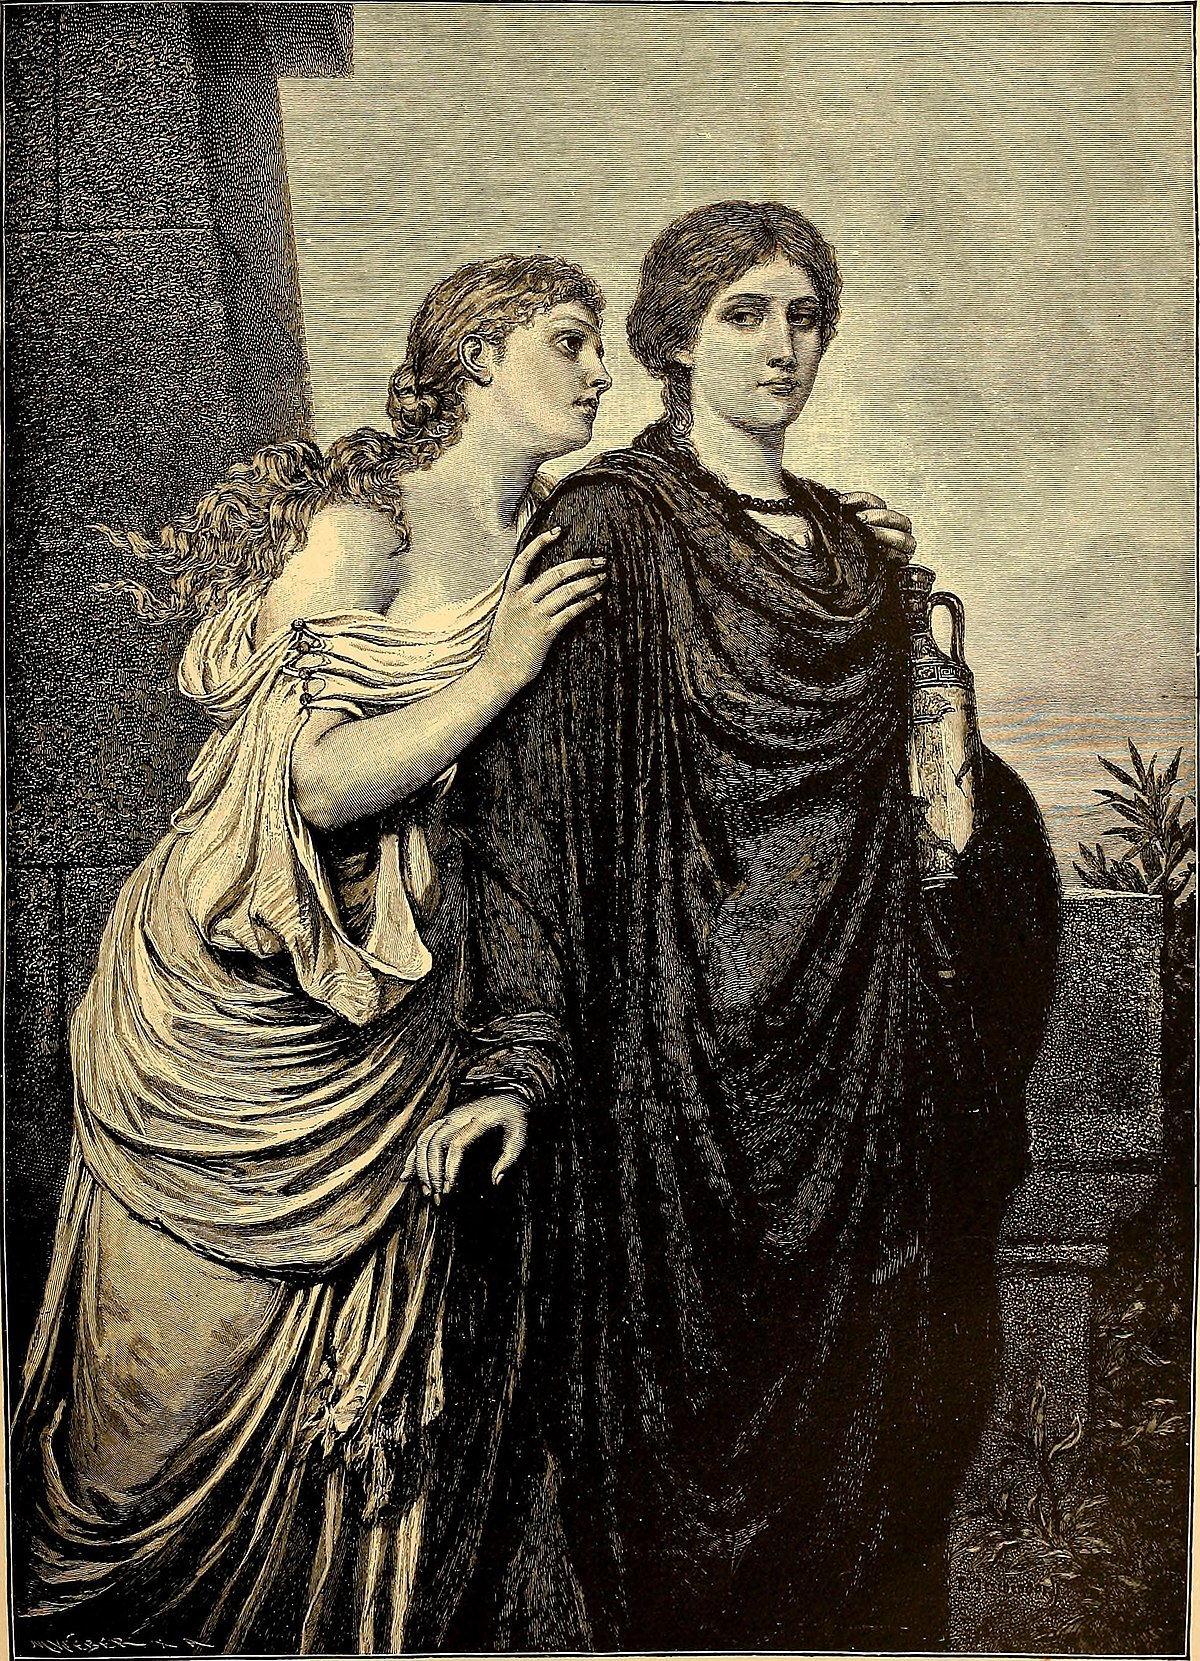 What are Antigone's positive traits and what are her negative traits?